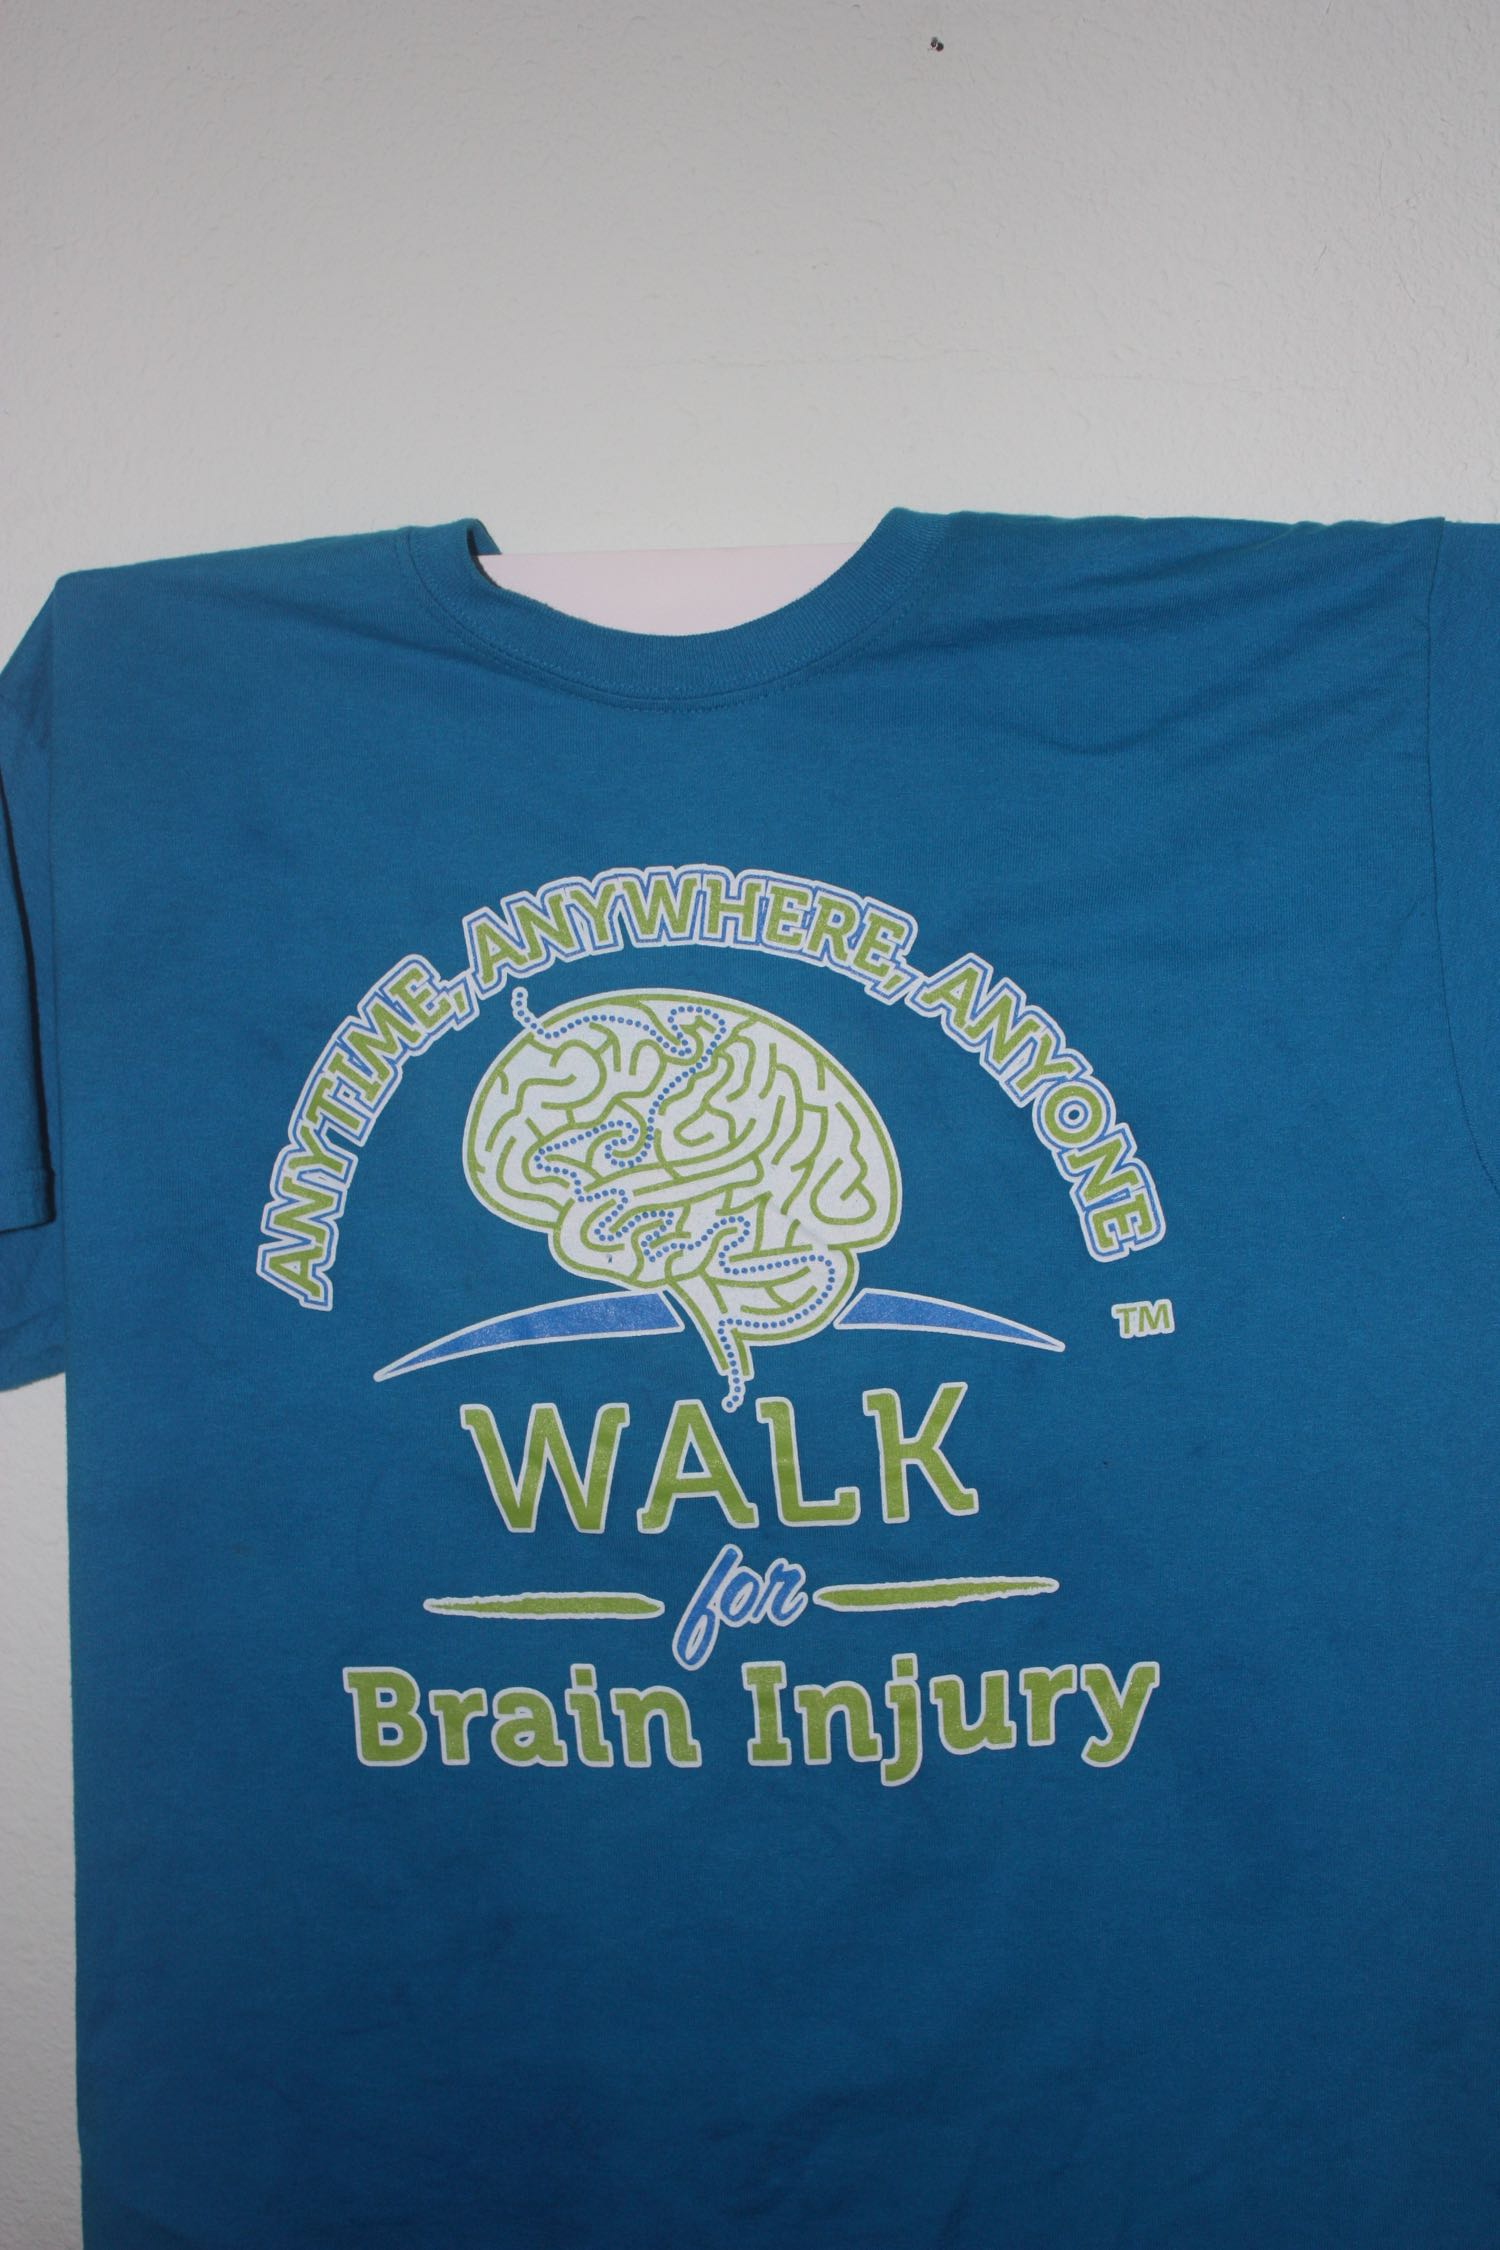 Brainwalk 1